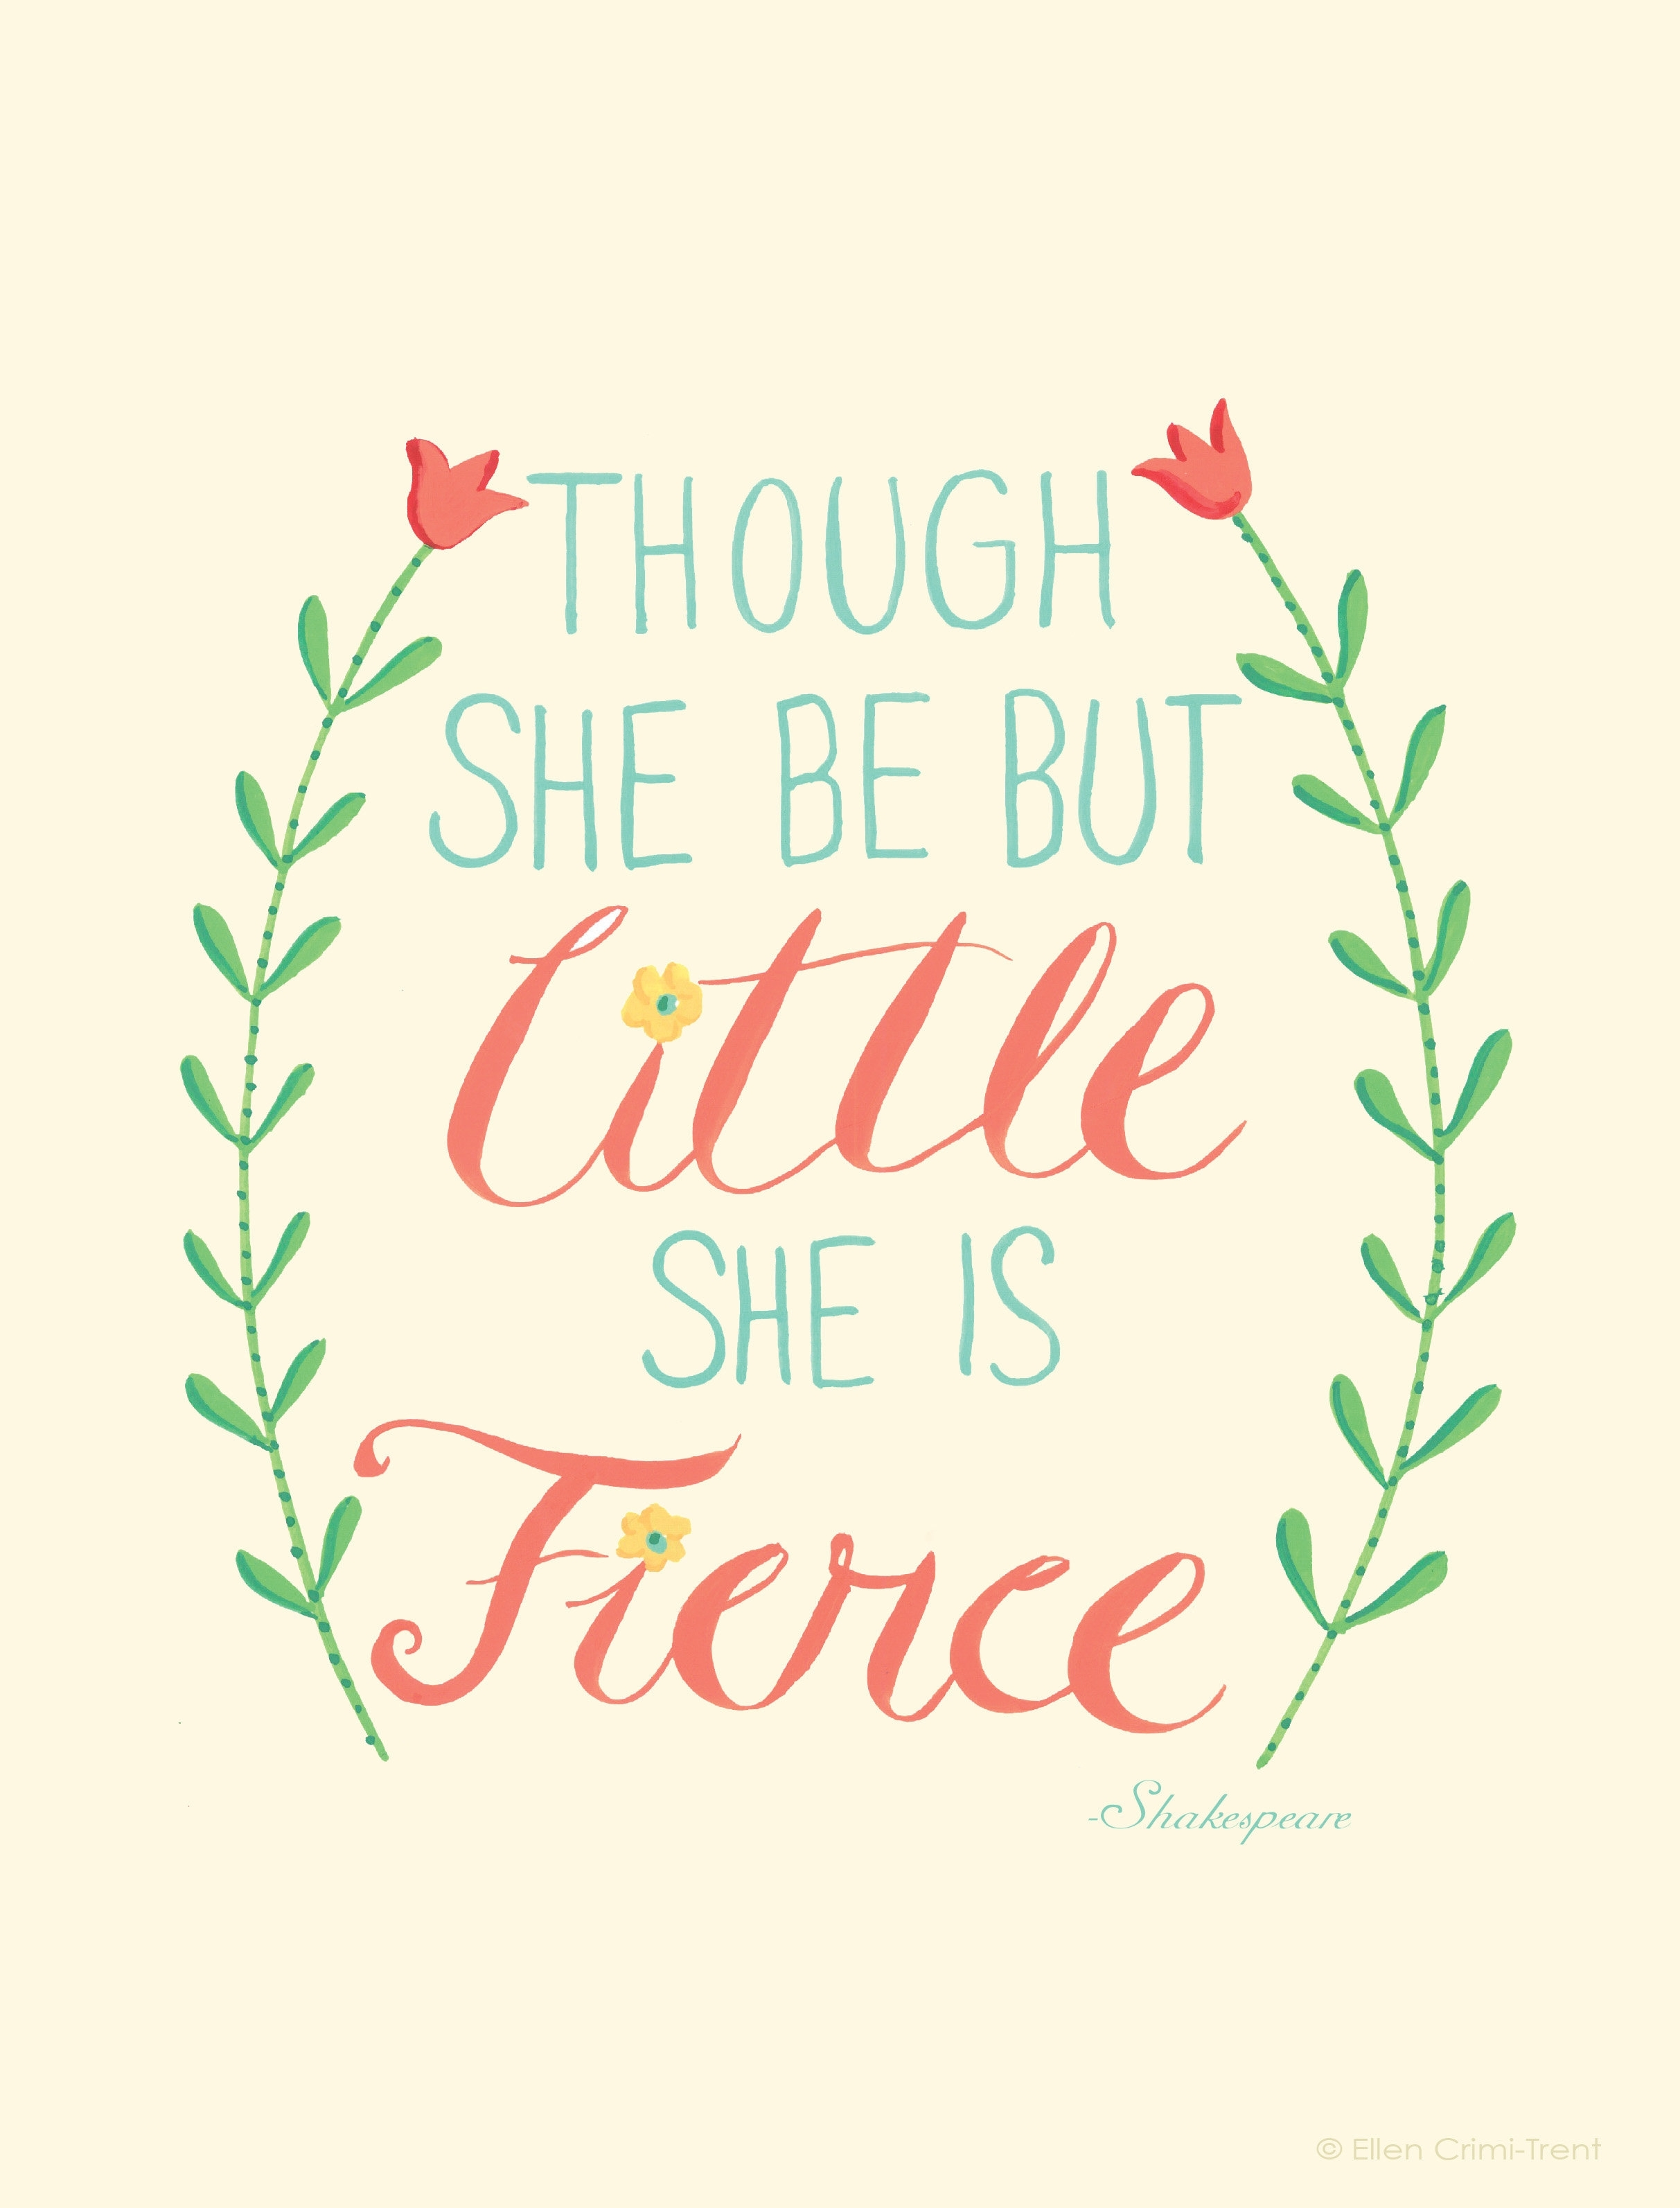 Ellen Crimi Trent 'though She Be But Little She Is Fierce' Textual Intended For Though She Be But Little She Is Fierce Wall Art (Photo 19 of 20)